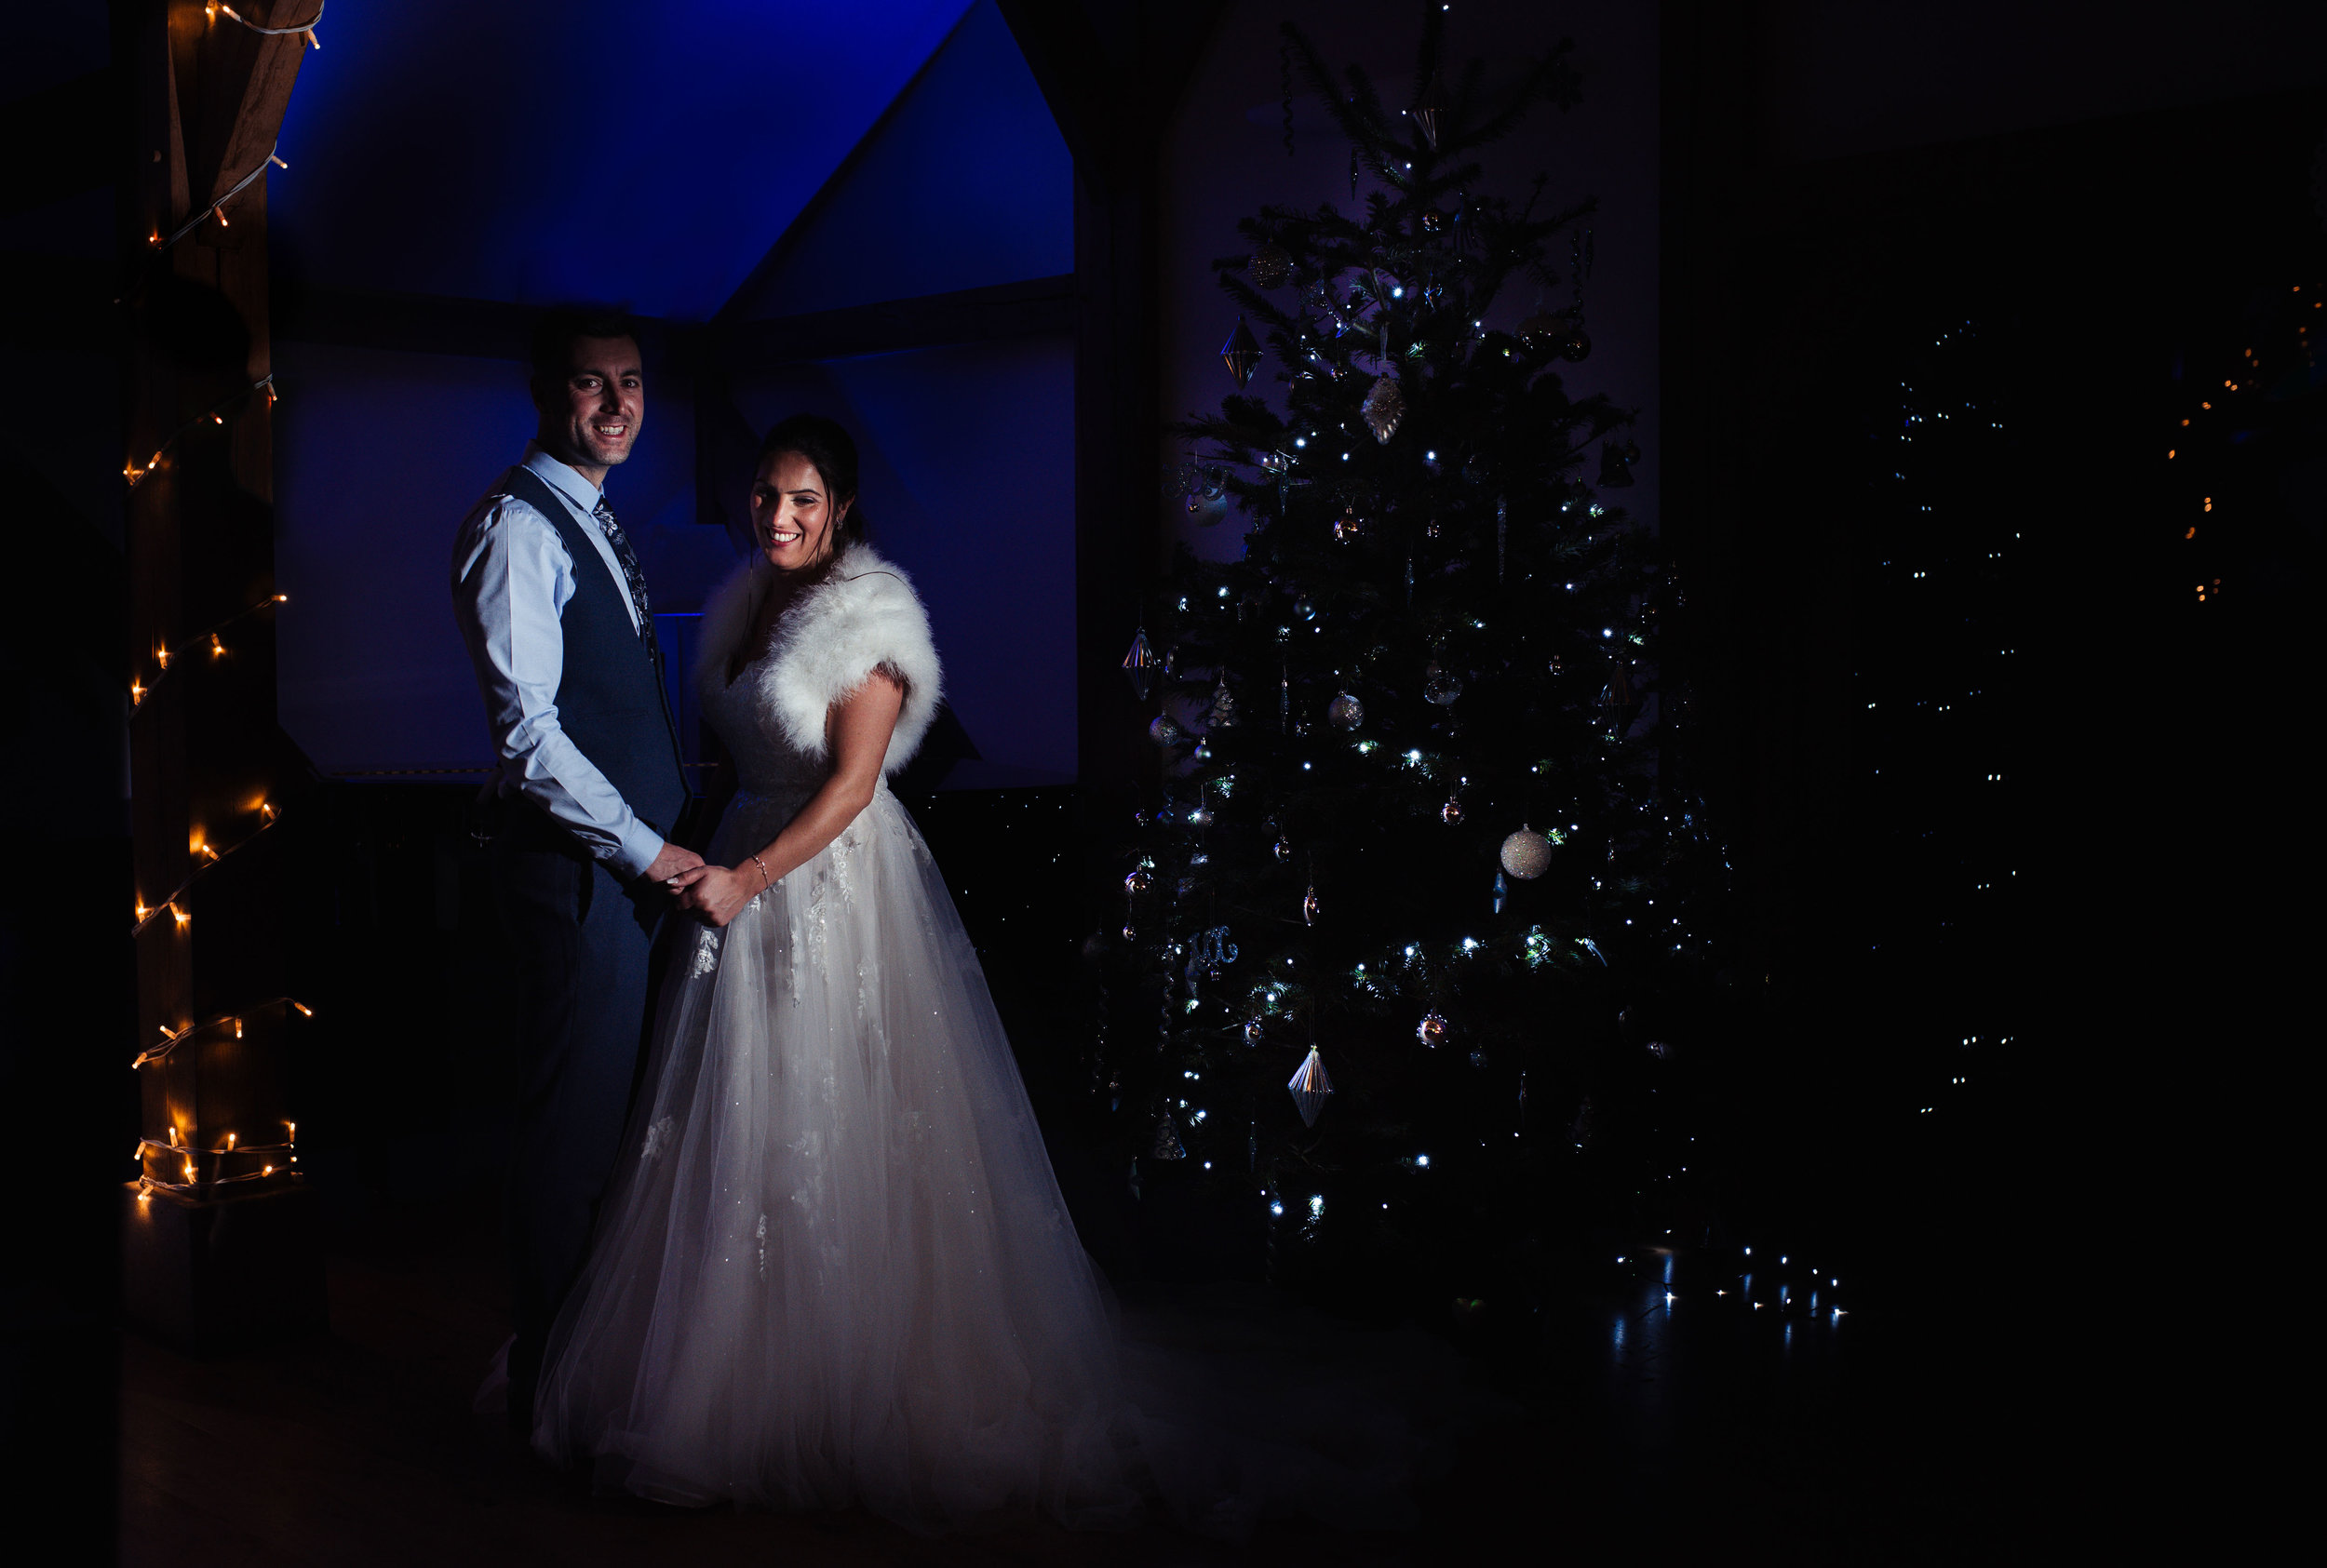 The bride and groom pose in front of the Christmas tree at Sandhole Oak Barn